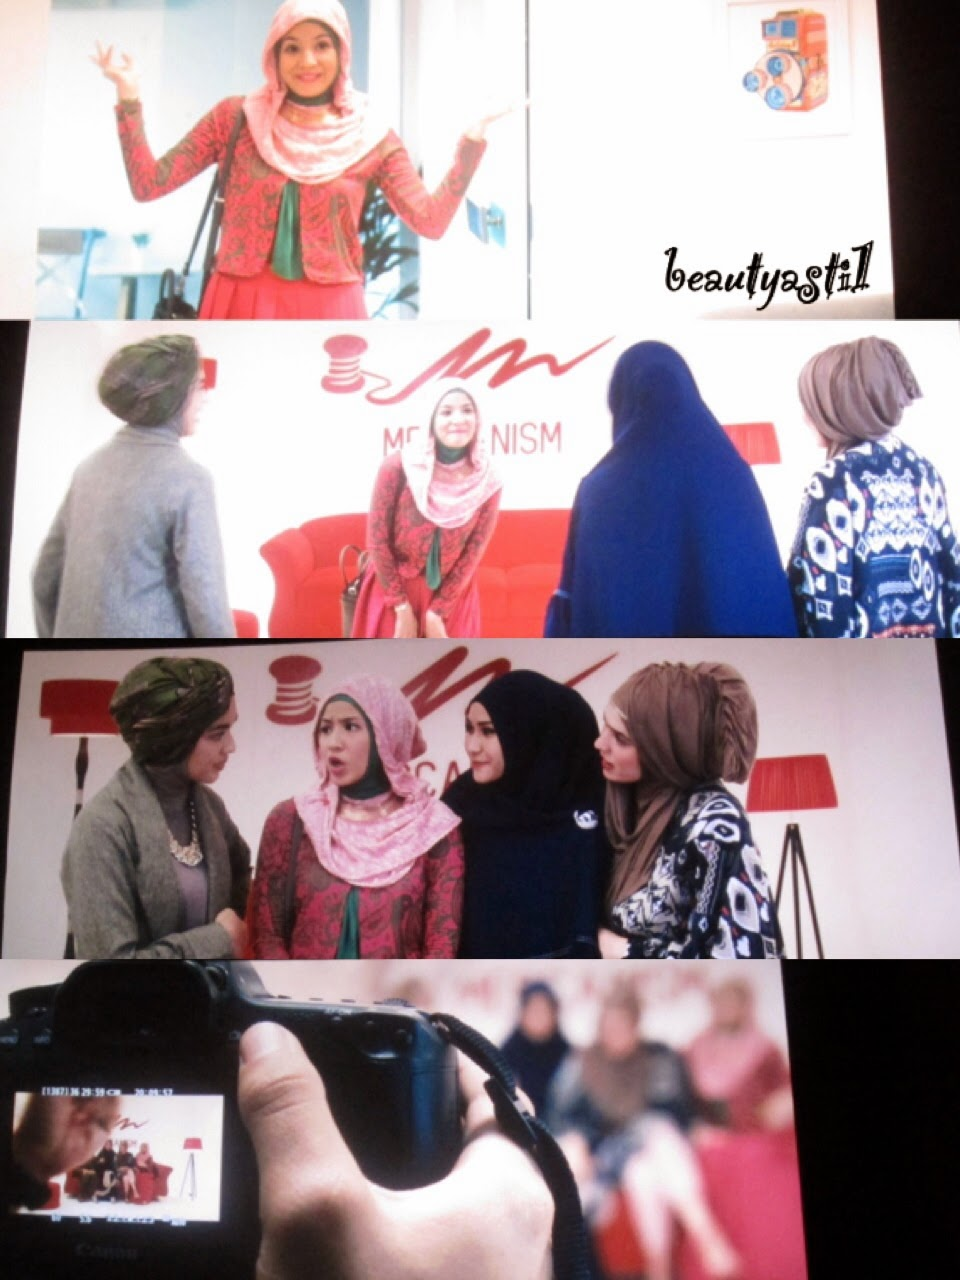 hijab-the-movie.jpg